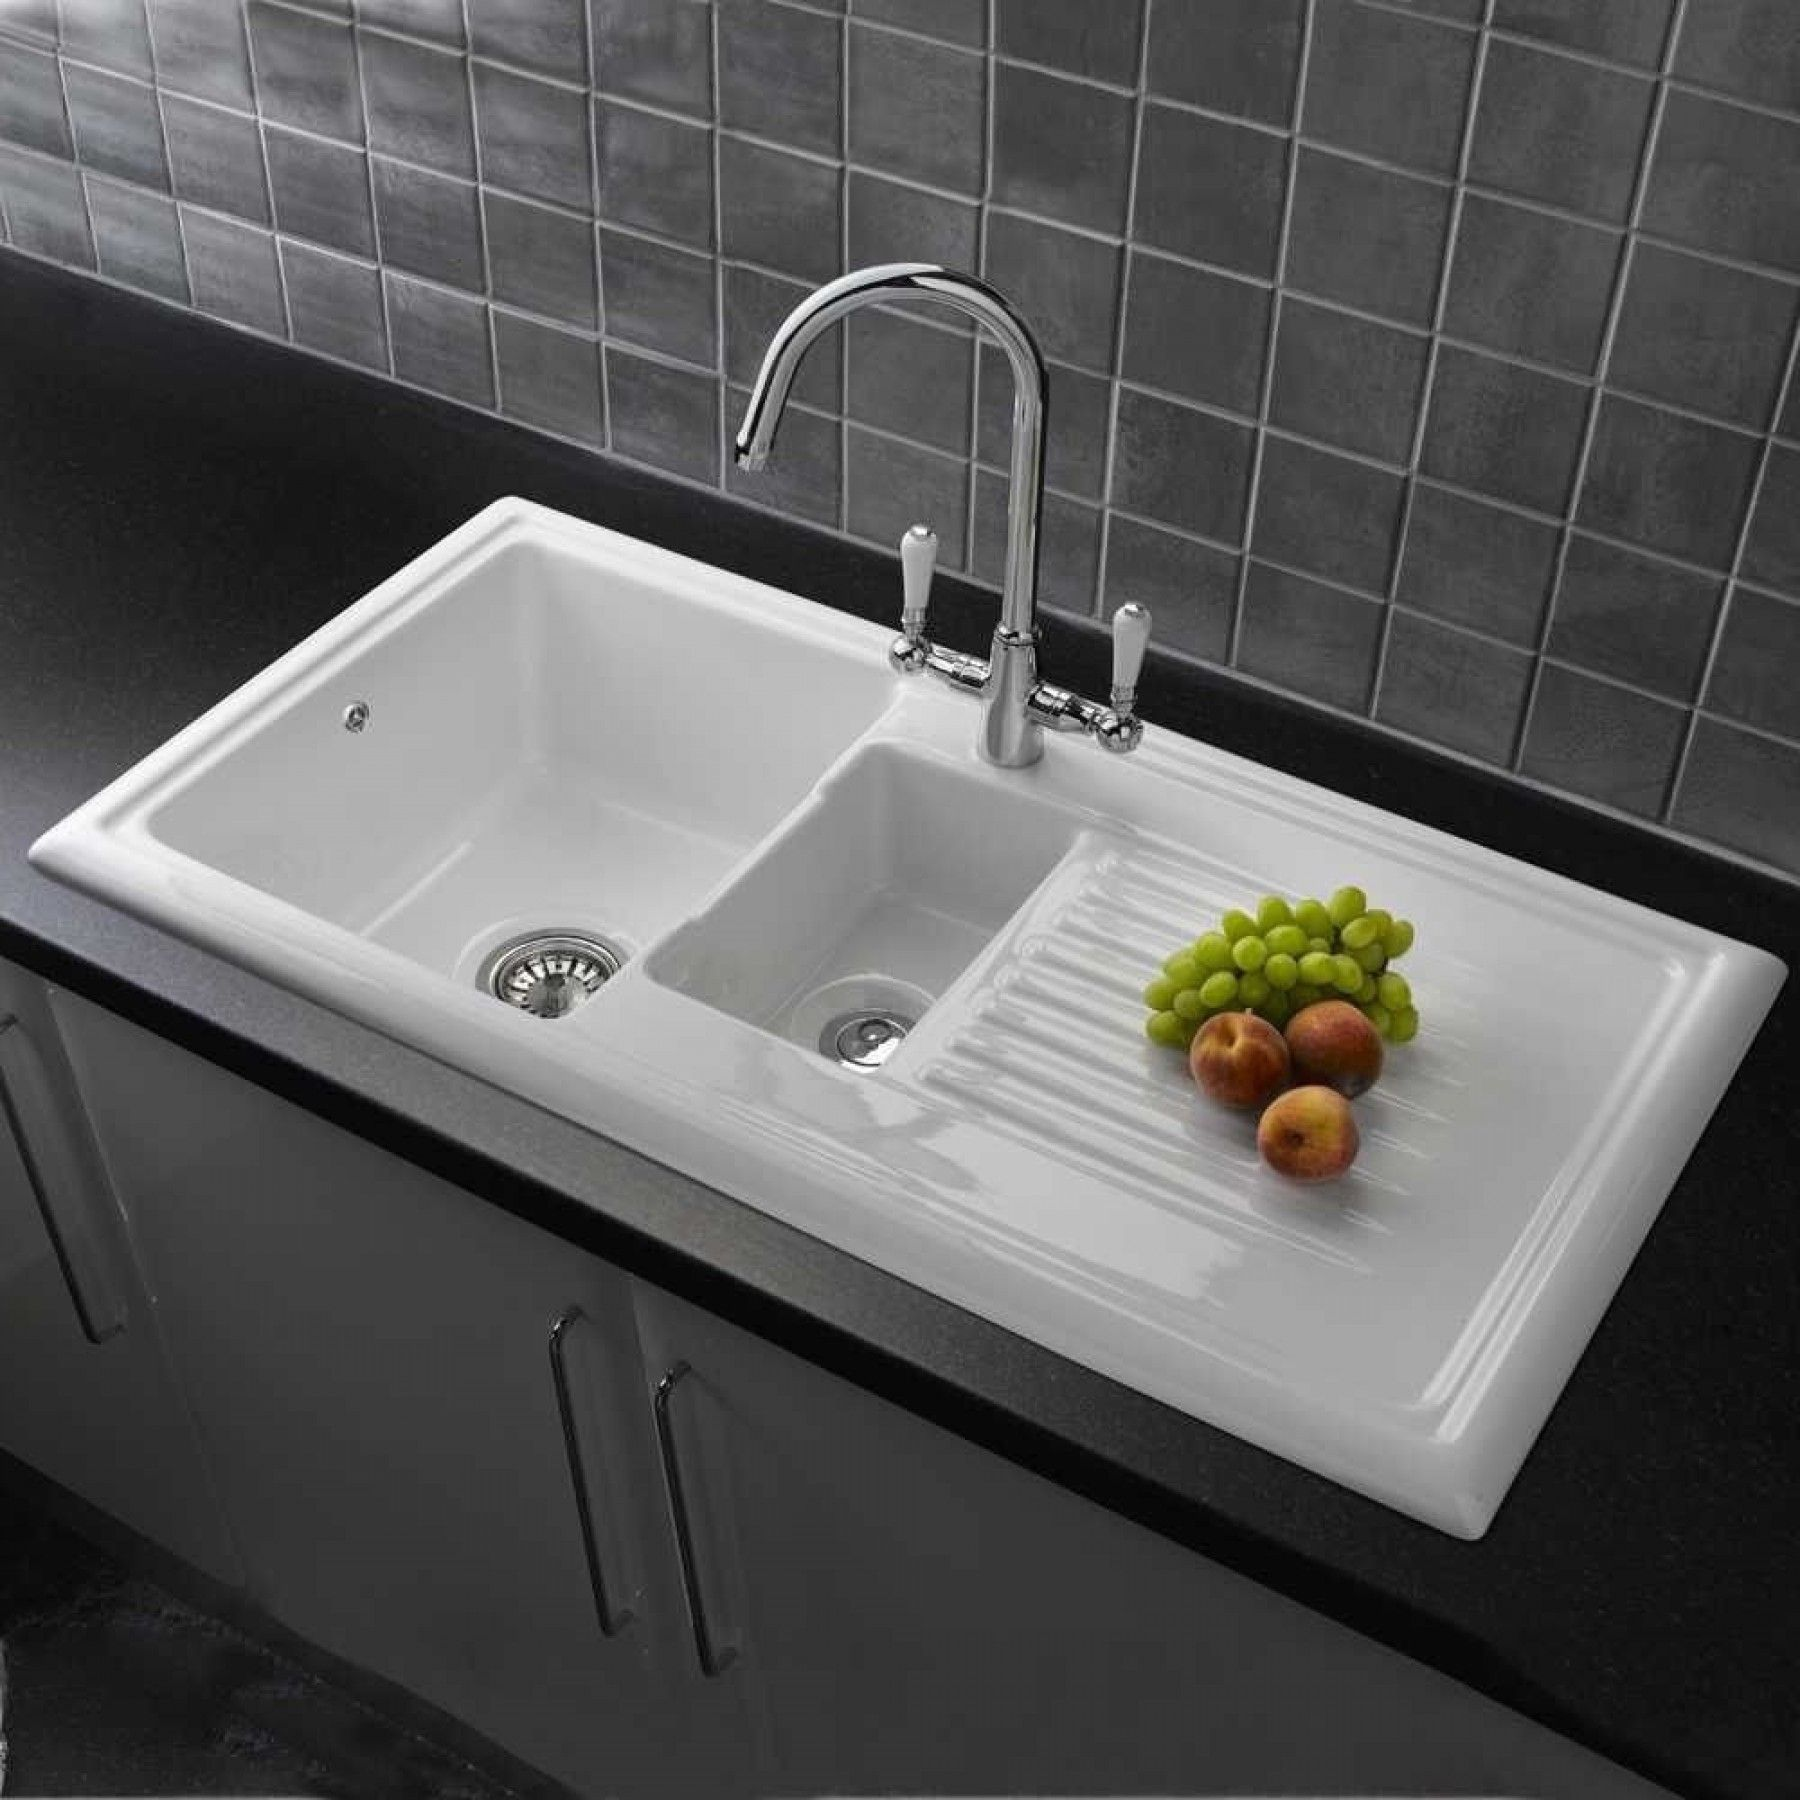 Reginox RL301CW 1.5 Bowl Reversible White Ceramic Kitchen Sink U0026 Waste Kit  #basintapssale #bathtapssale